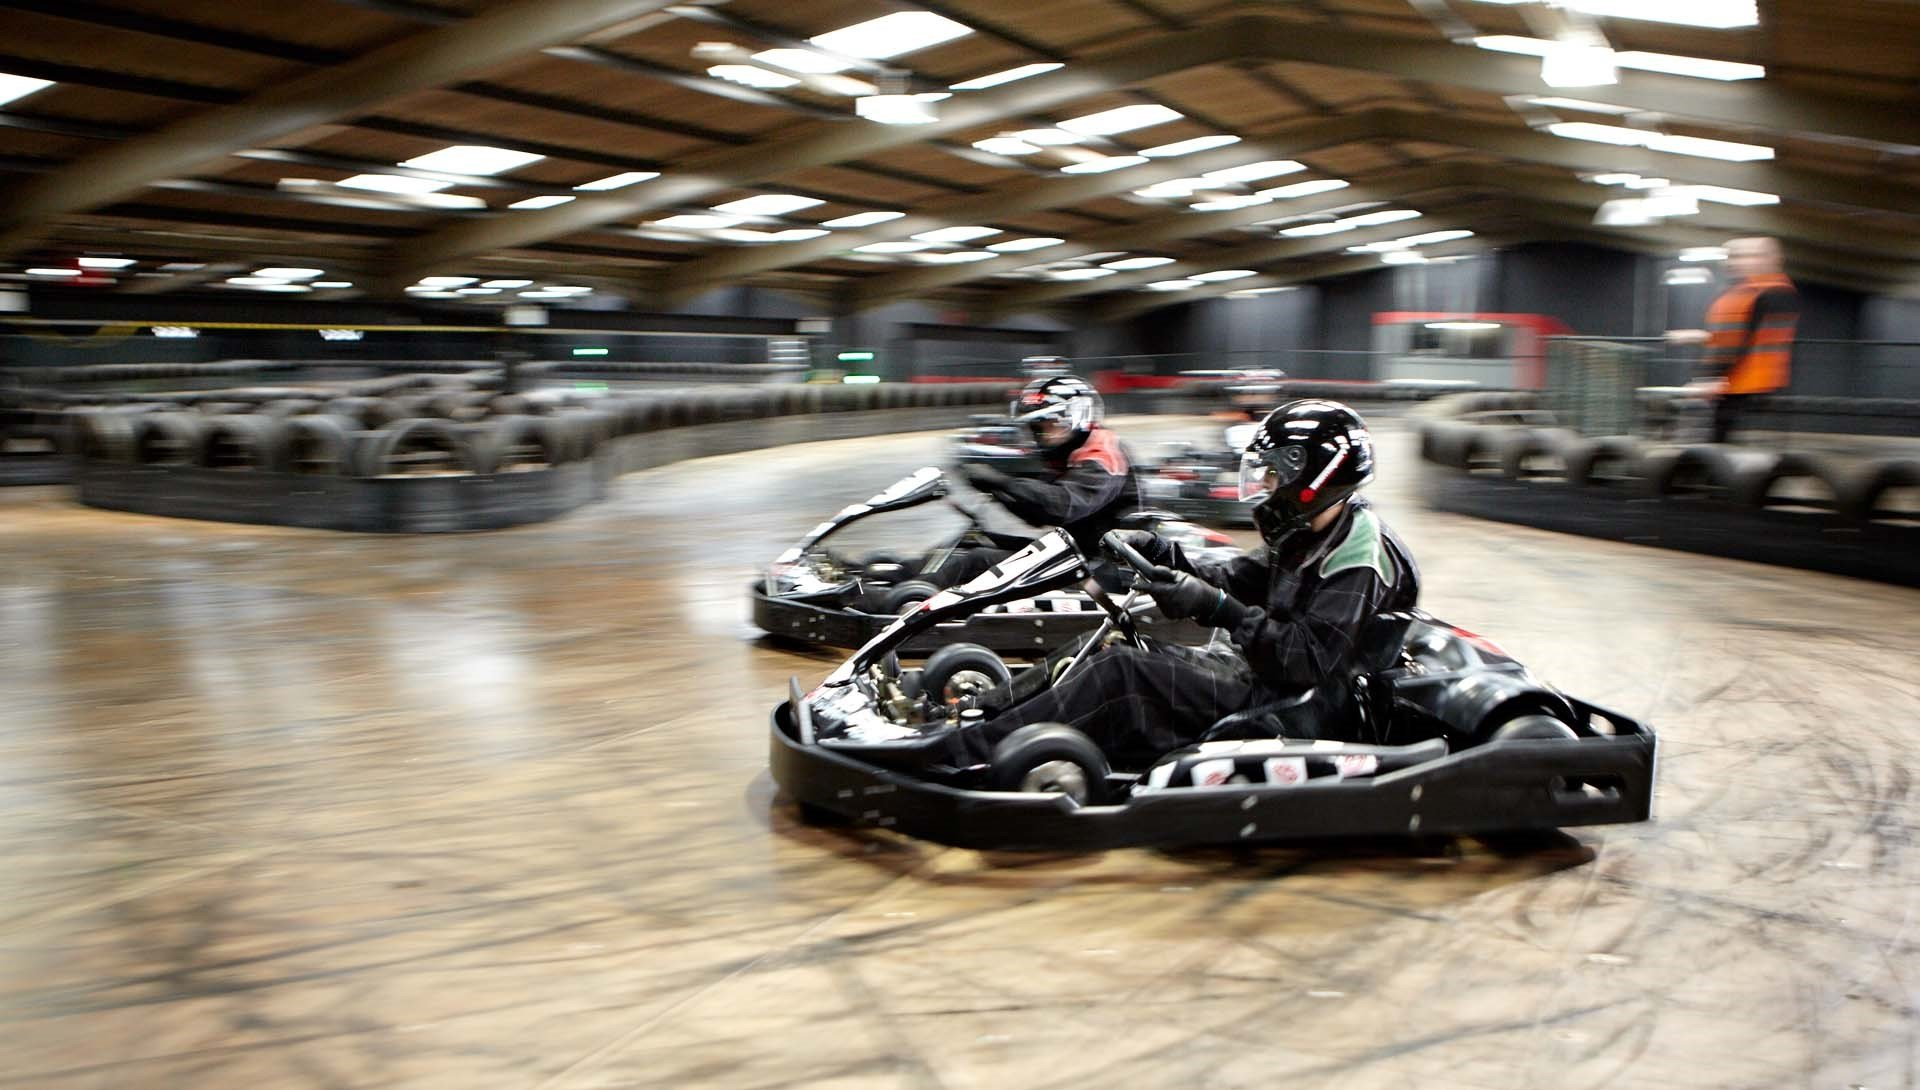 TeamSport_Gallery_Go_karting_Crawley_1920x1090-min_2.jpg